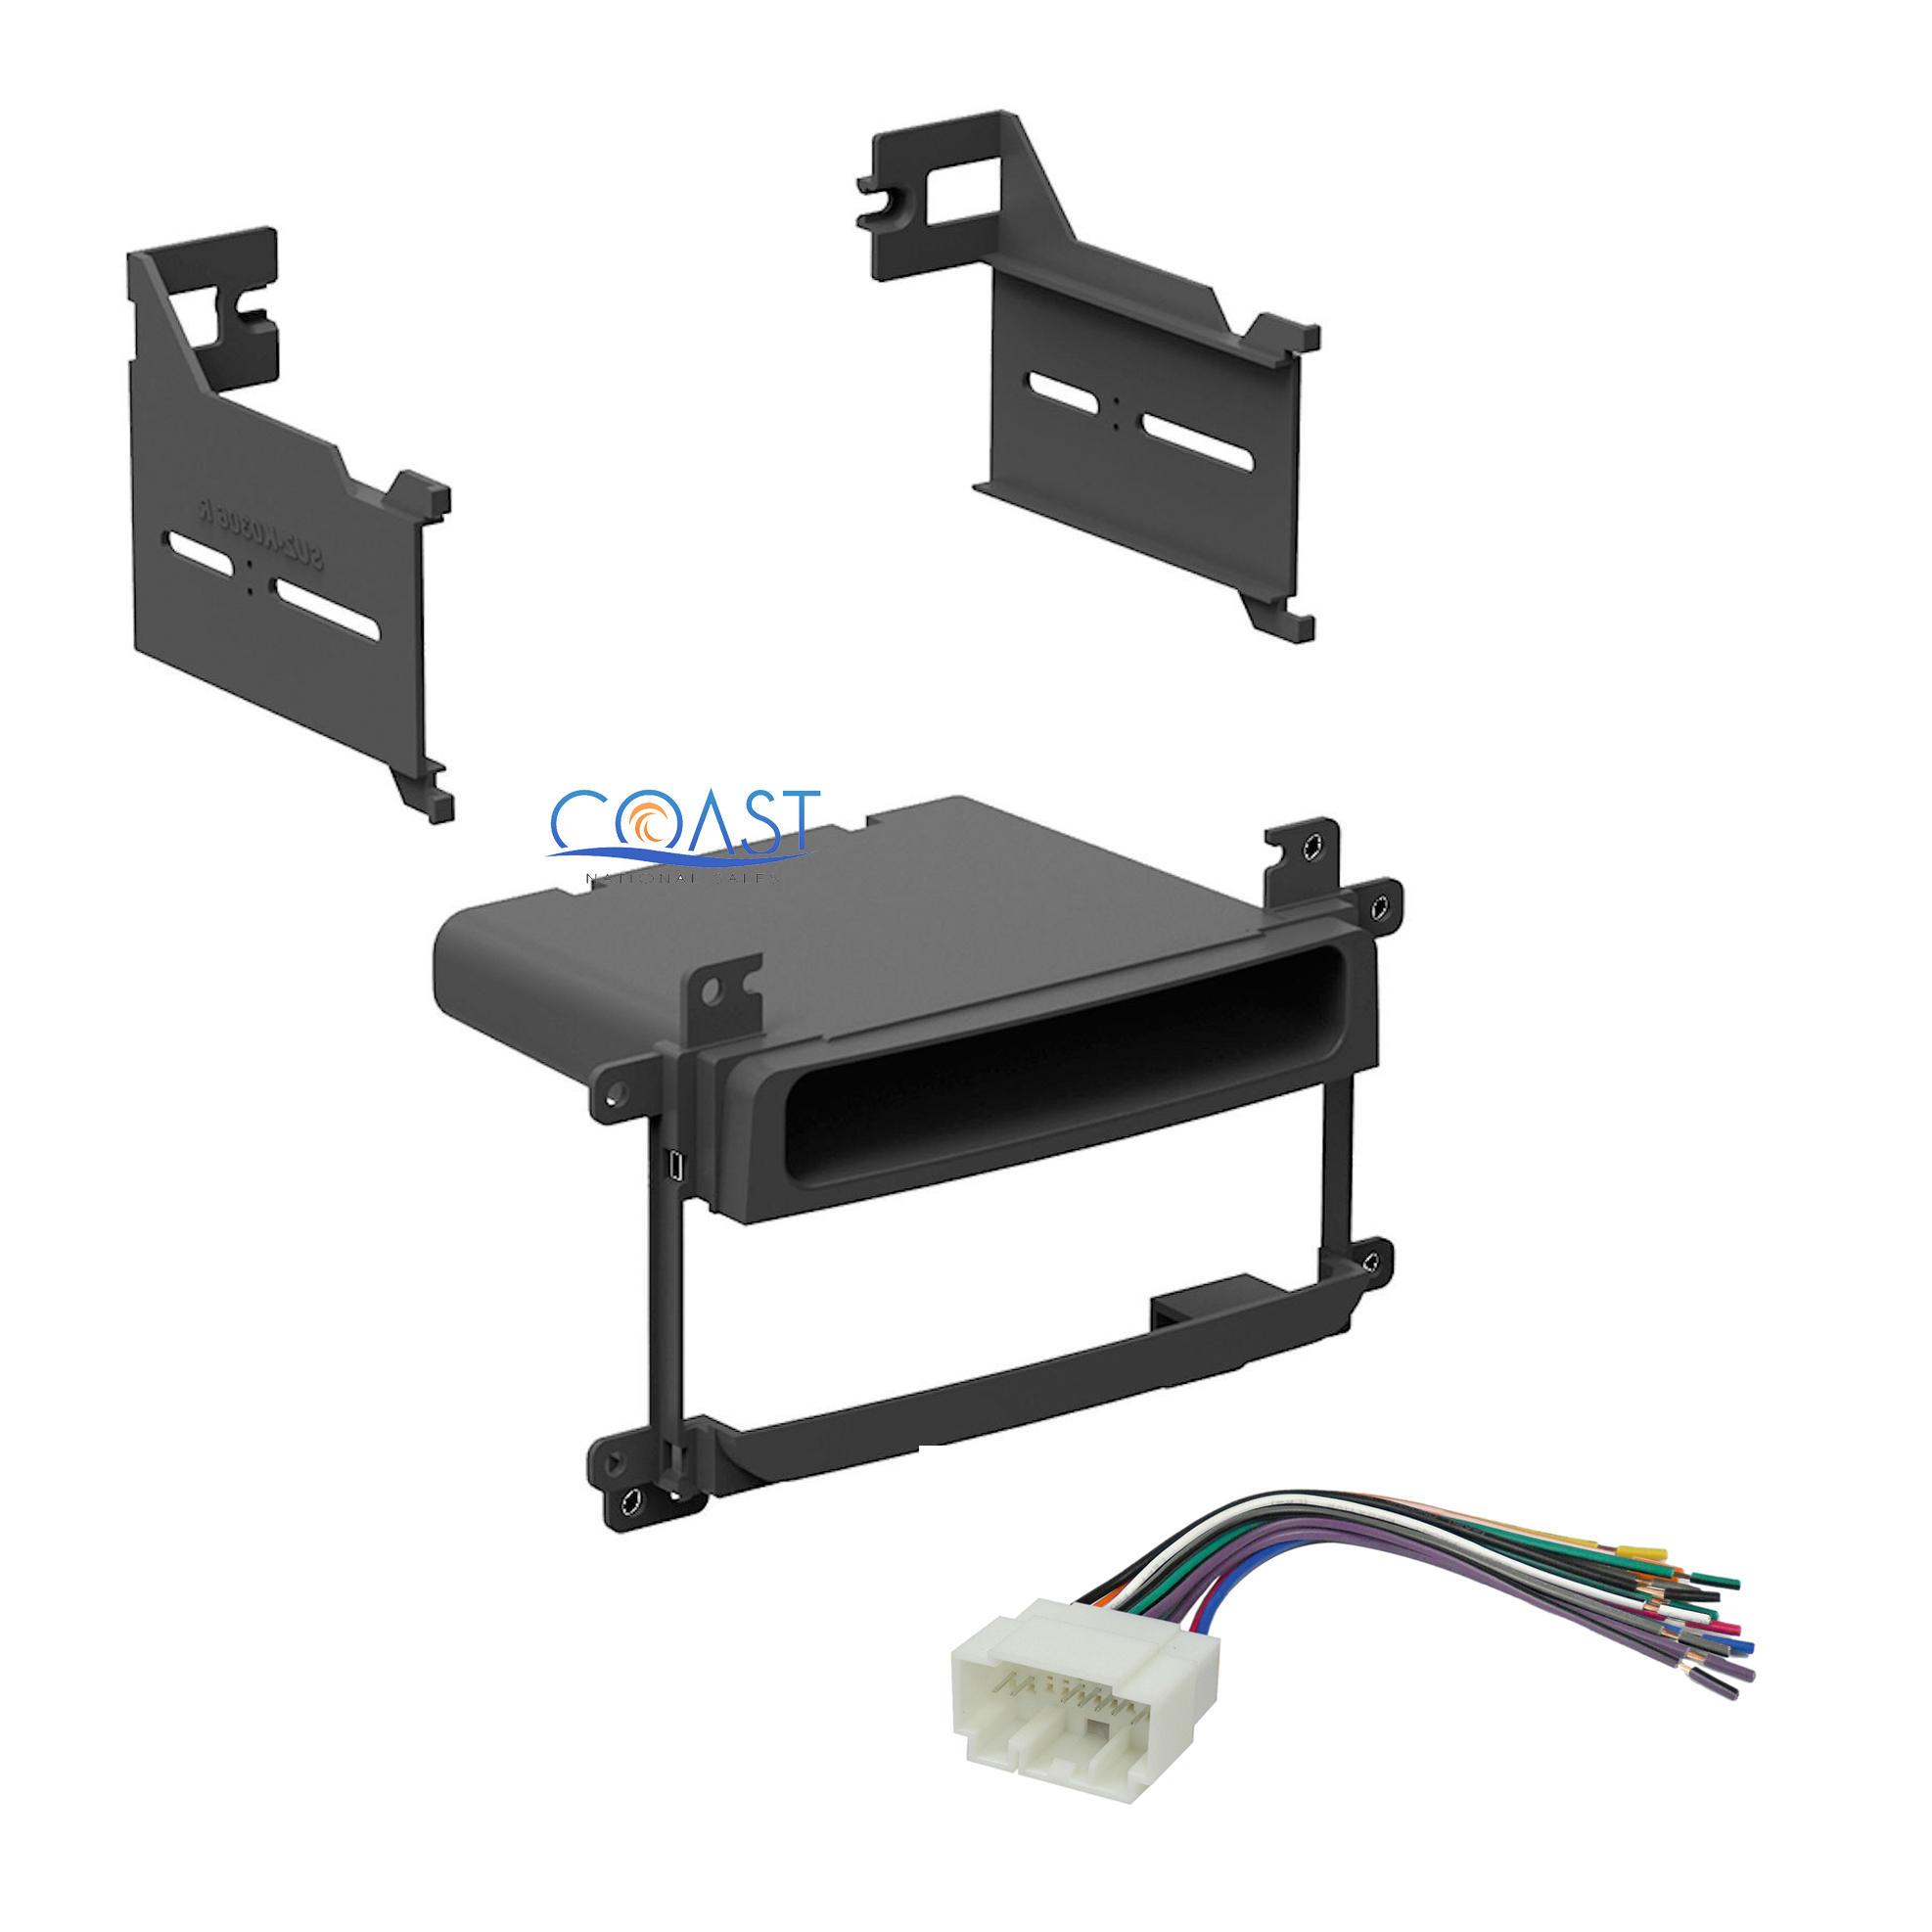 Replacement for Radio Wiring Harness for 2005 Suzuki Aerio SX Wagon 5-Door 2.3L Car Stereo Connector